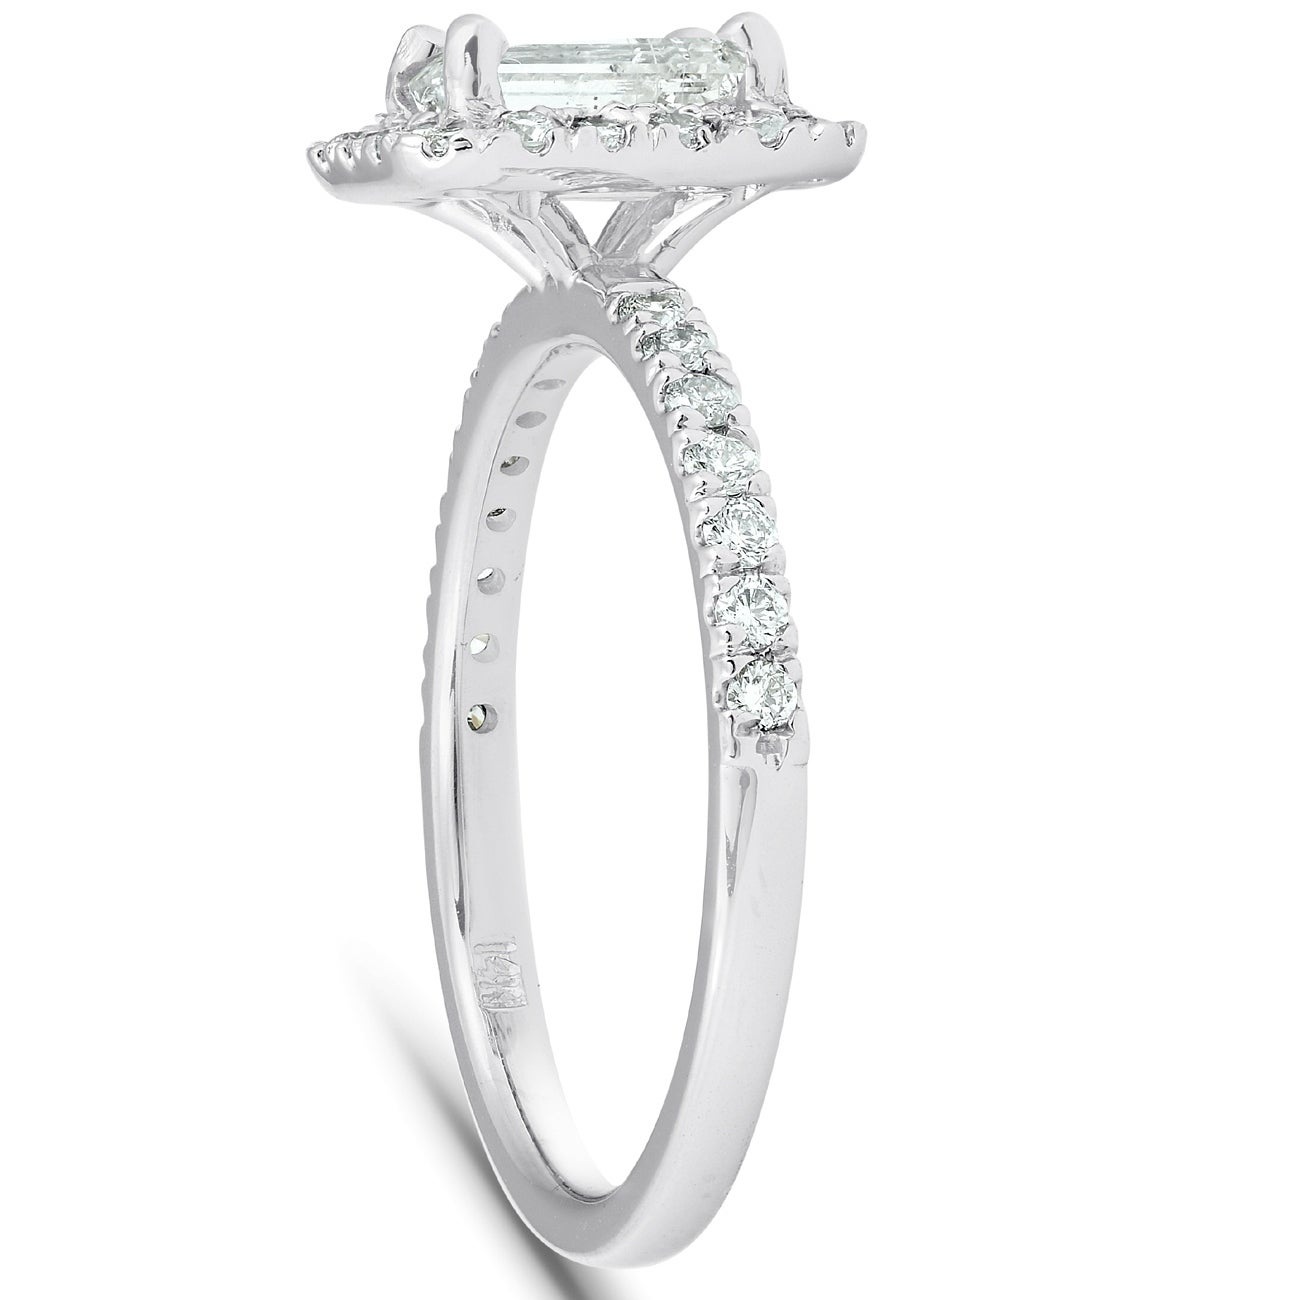 Details about  /2.18 Emerald Cut Halo Wedding Bridal Engagement Anniversary Ring 14k White Gold